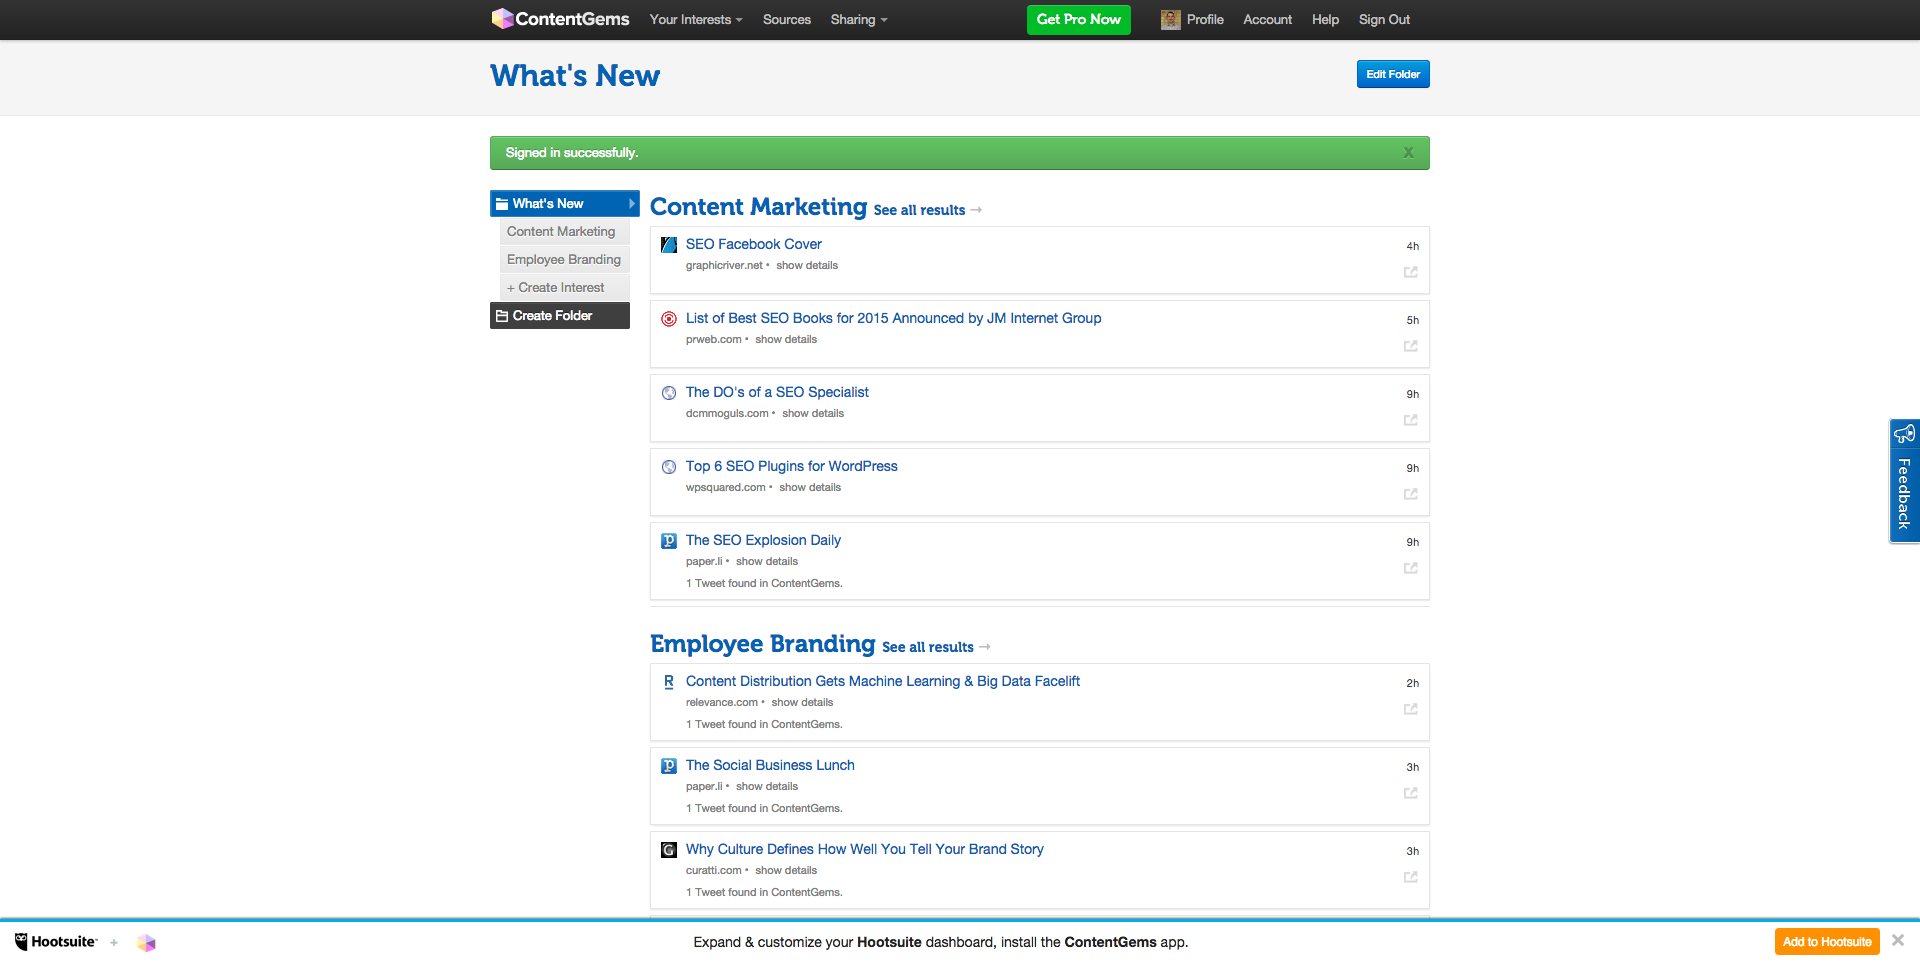 ContentGems Feed Content Marketing Employee Branding